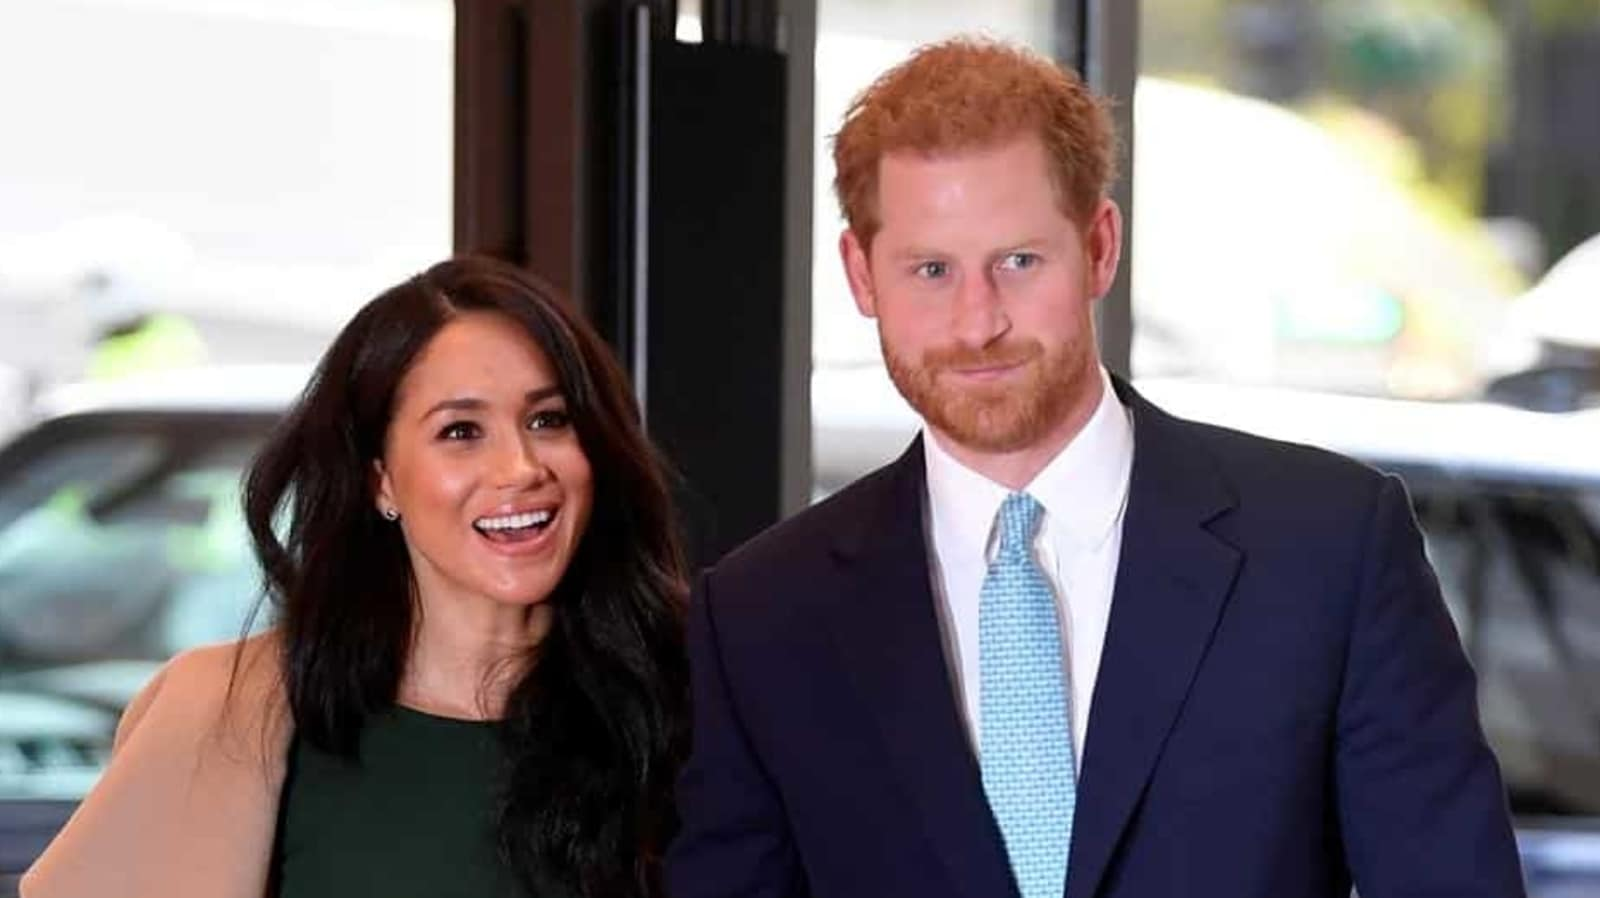 Man arrested for trespassing Meghan Markle, Prince Harry's California home